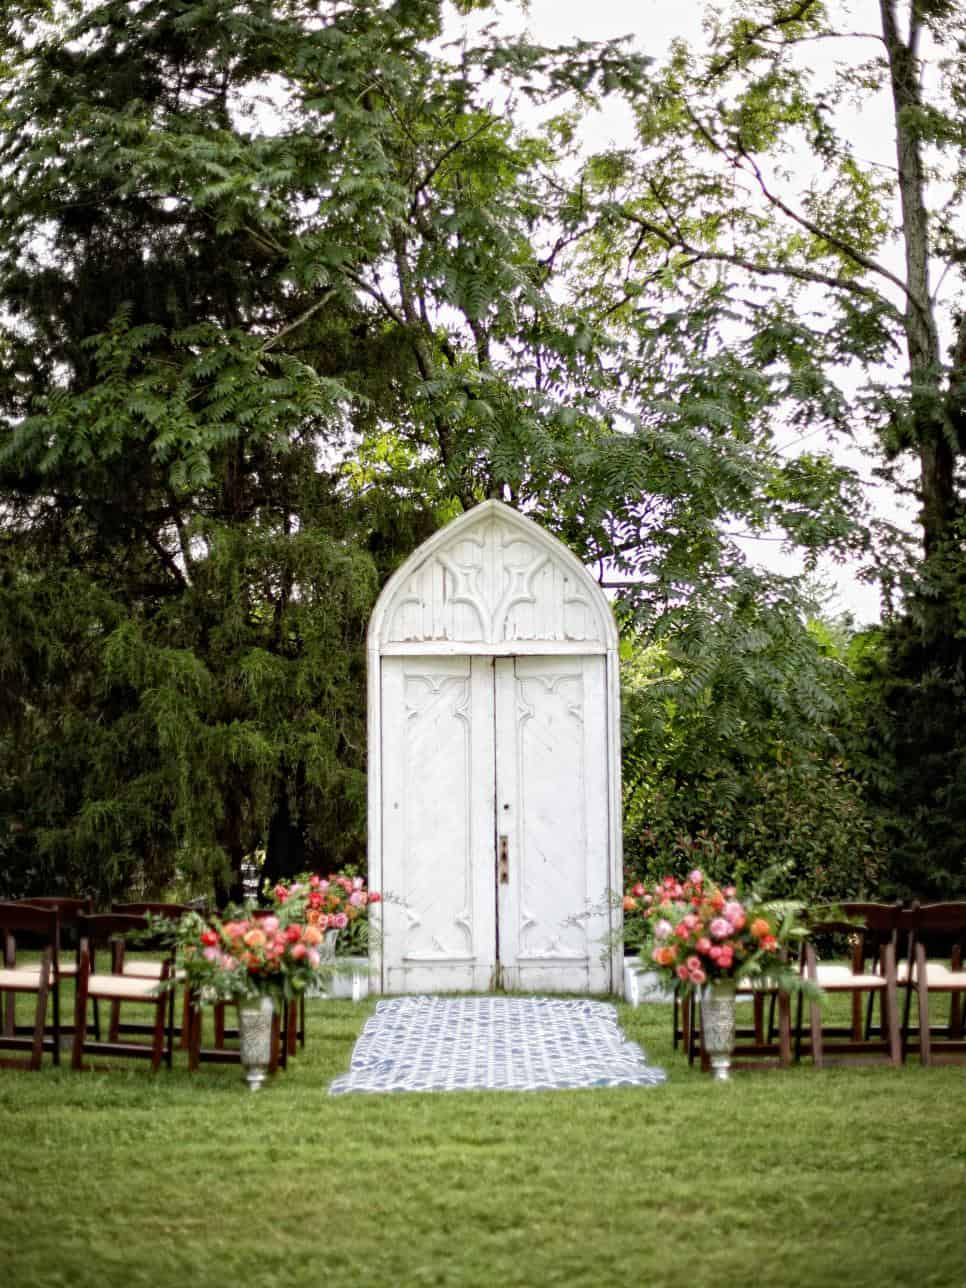 15 diy wedding arches to highlight your ceremony with vintage church door wedding arch diy junglespirit